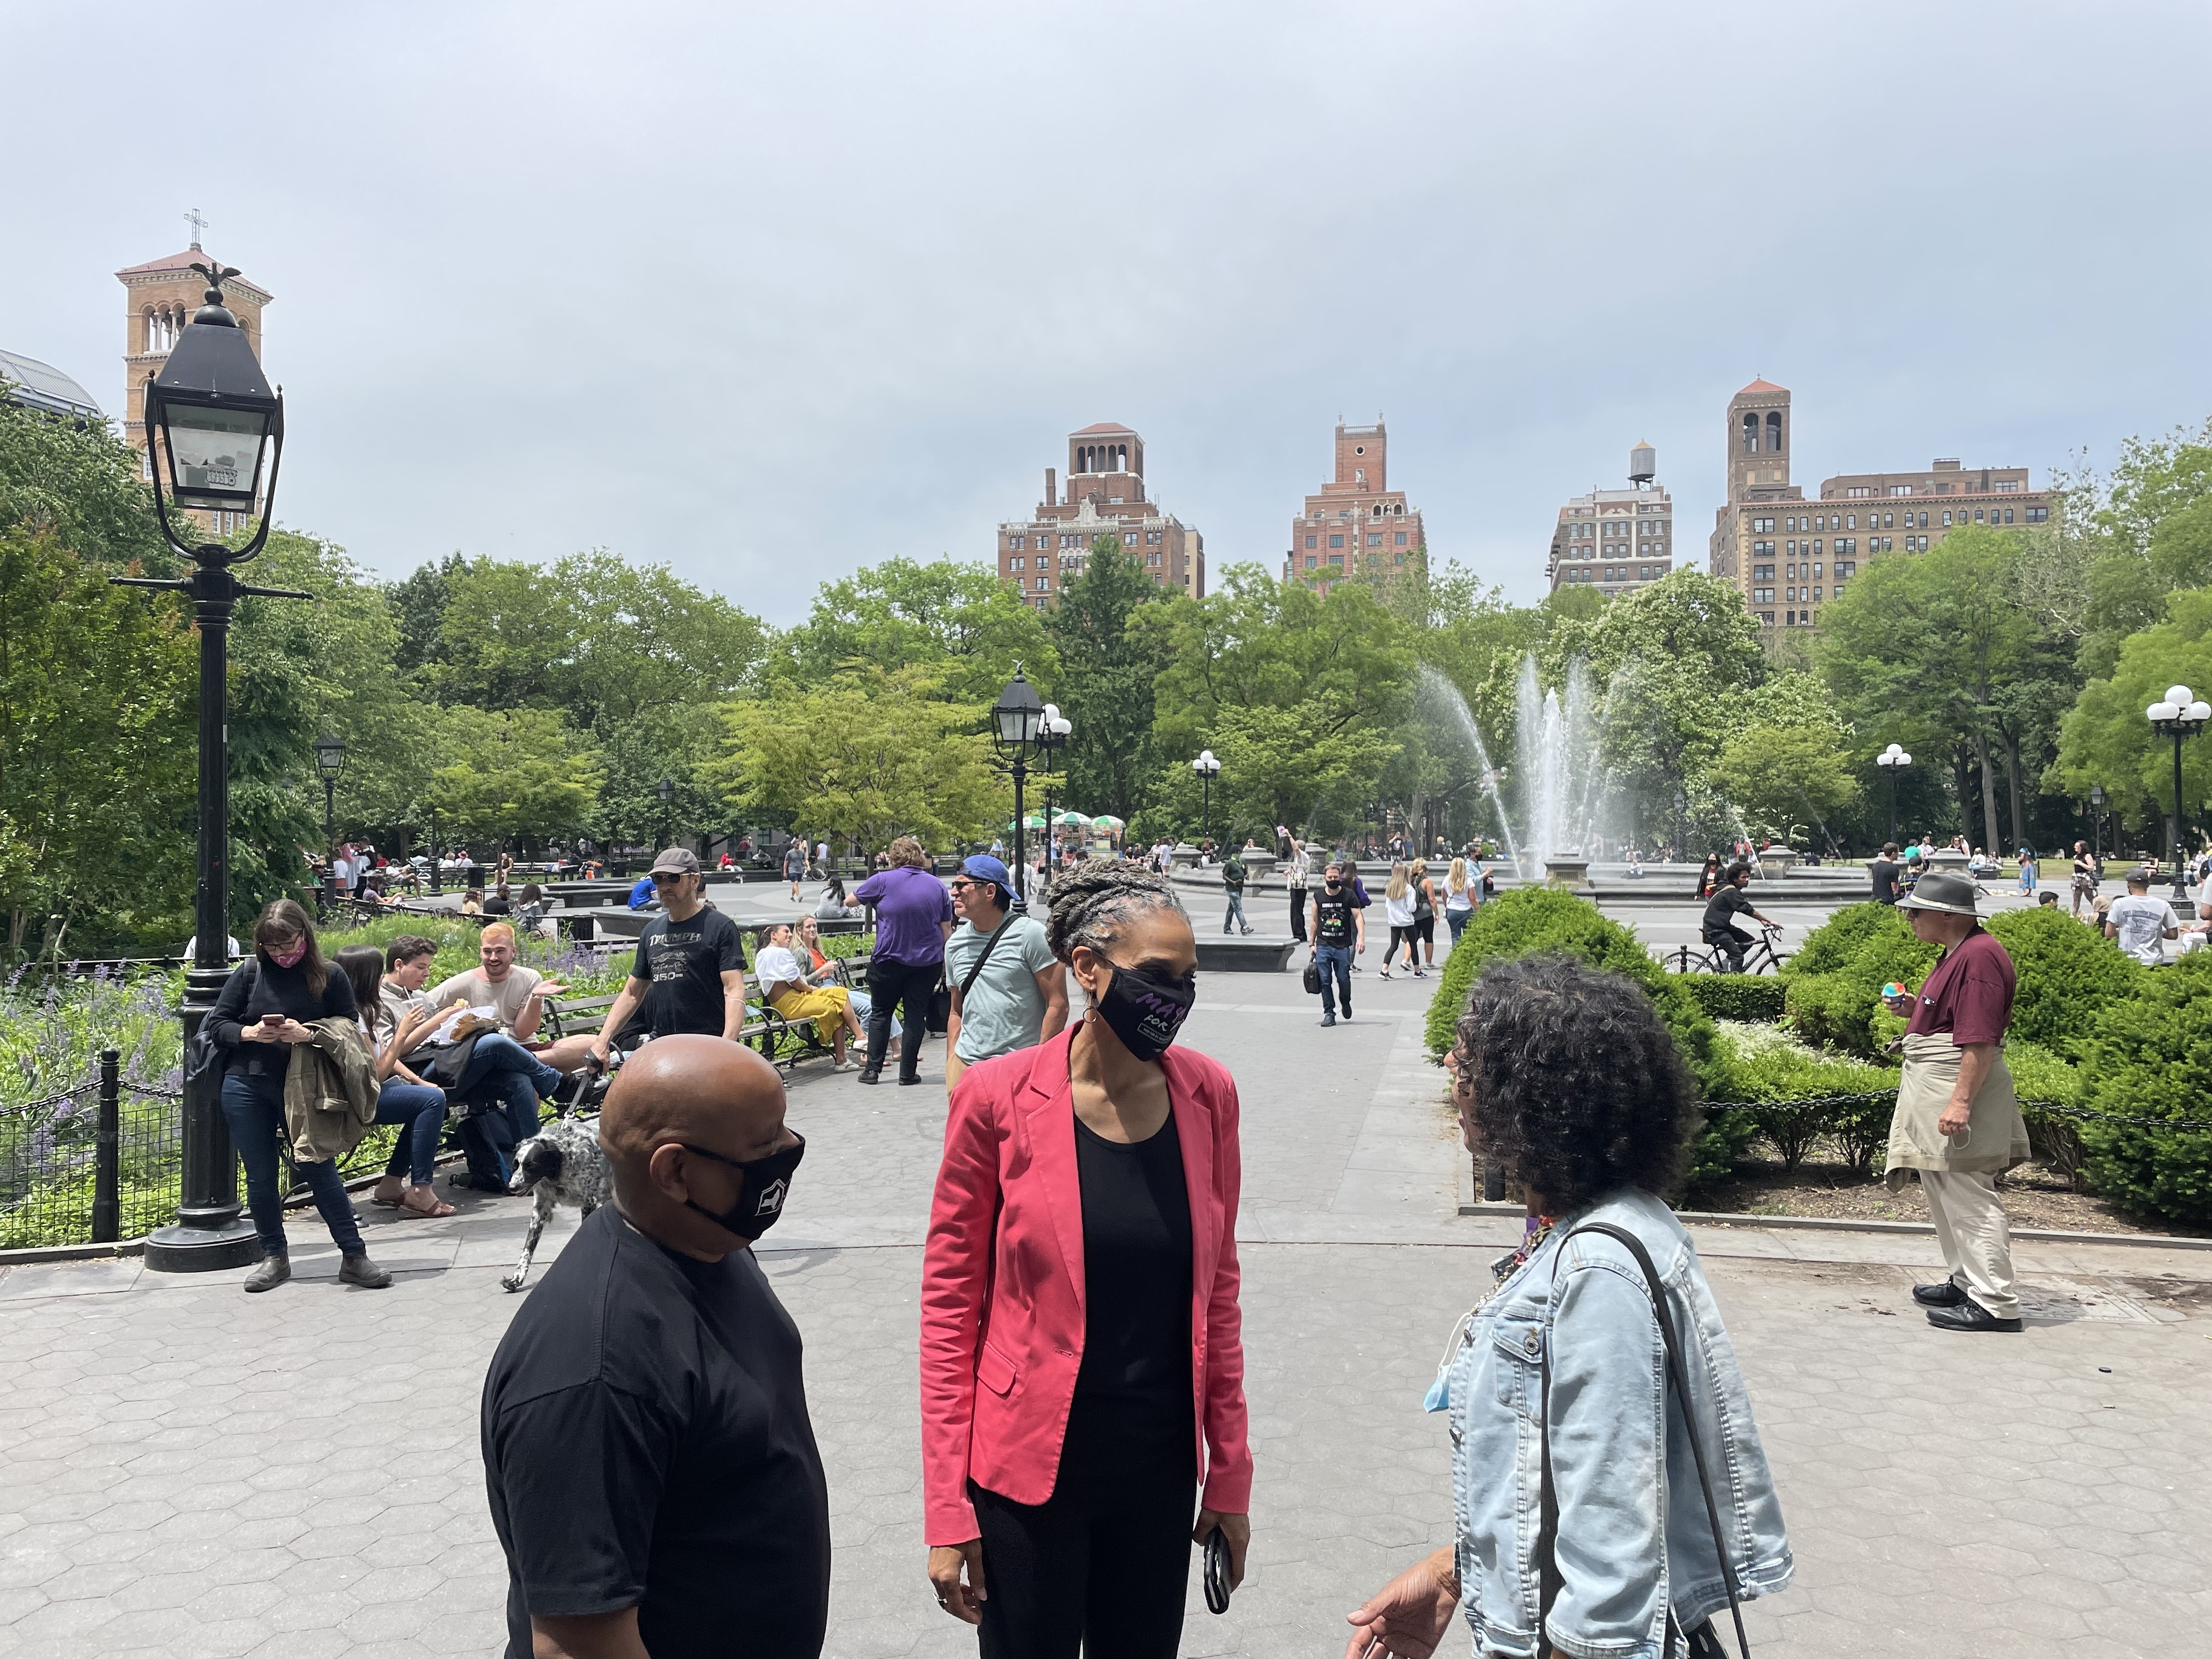 NYPD Ask Village Residents When They Want Cops to Close Washington Square Park (Which Doesn't Belong to Them) – Streetsblog New York City